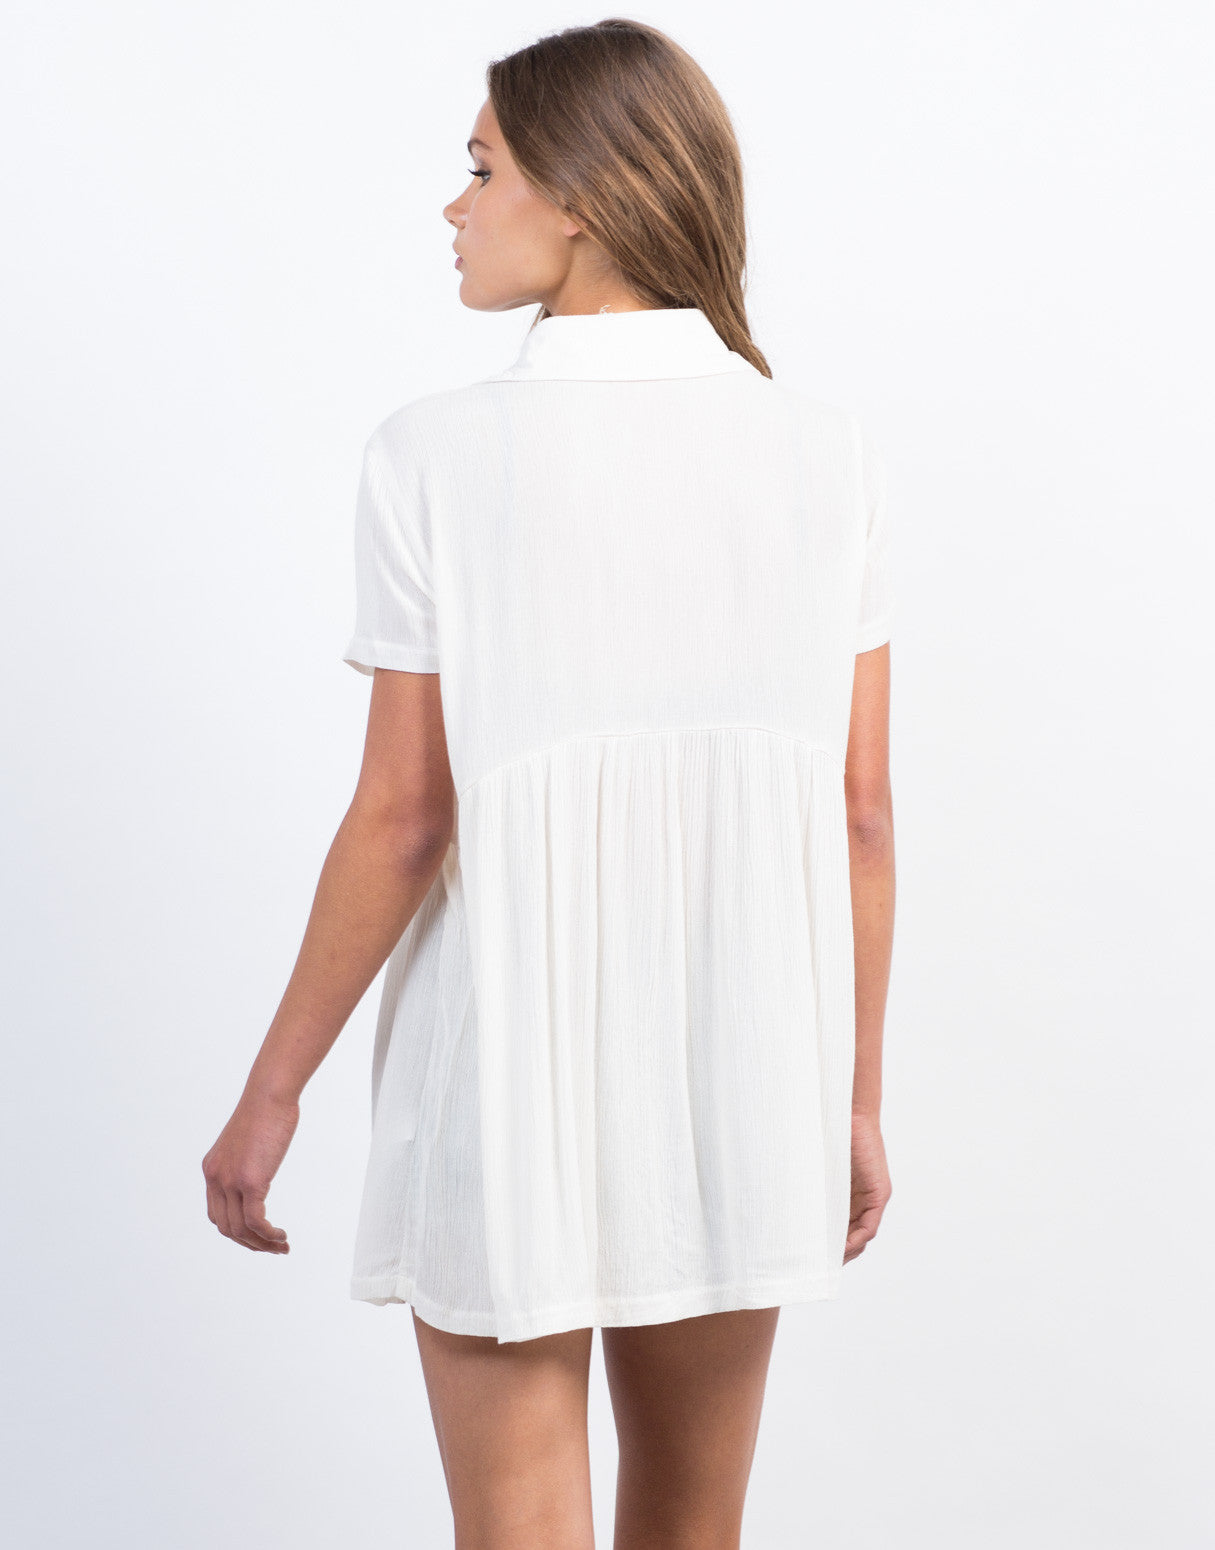 Back View of Button Down Babydoll Shirt Dress